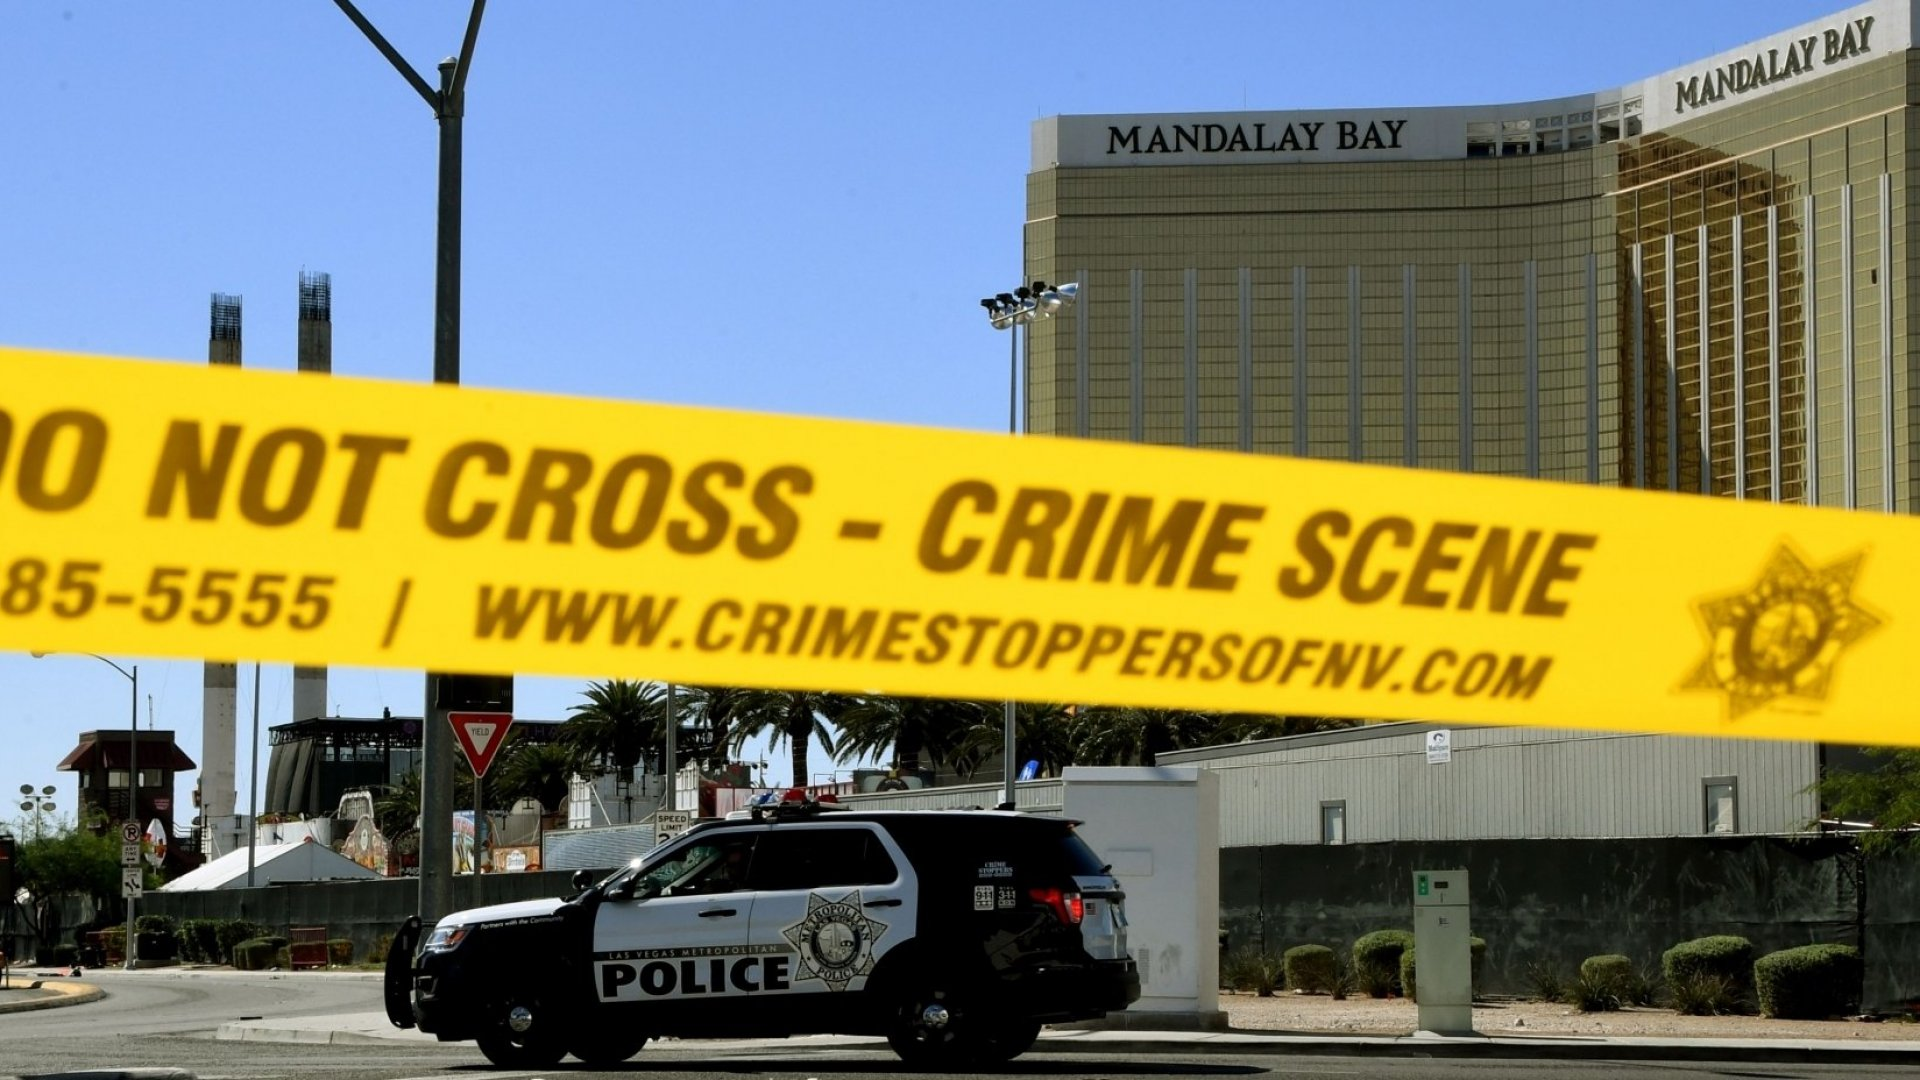 Police tape around the Mandalay Bay after the shooting.